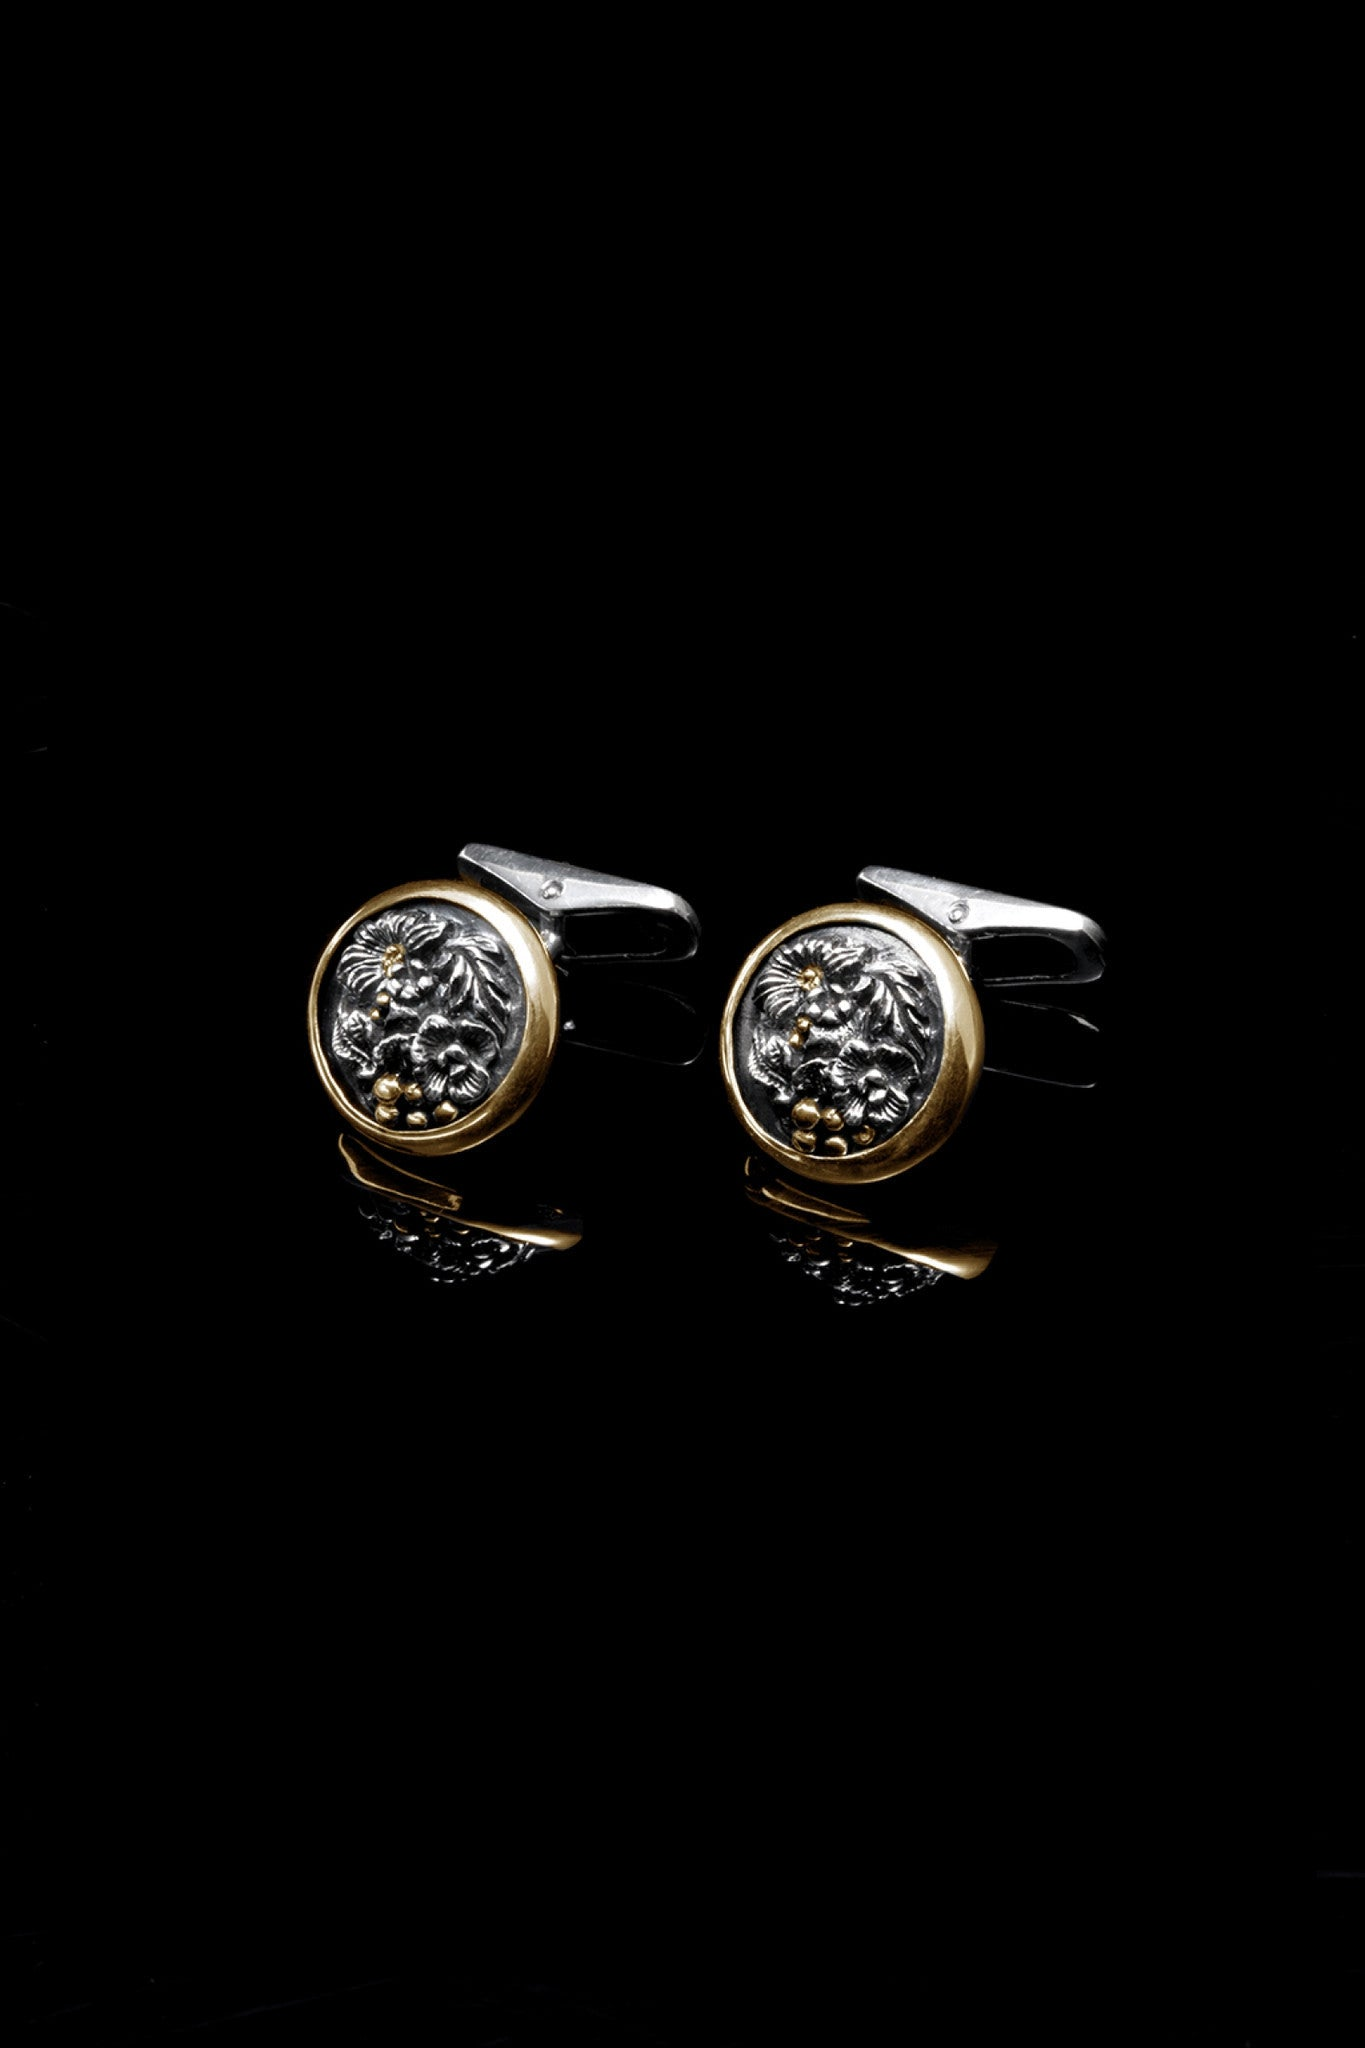 Button Foliage Cufflinks